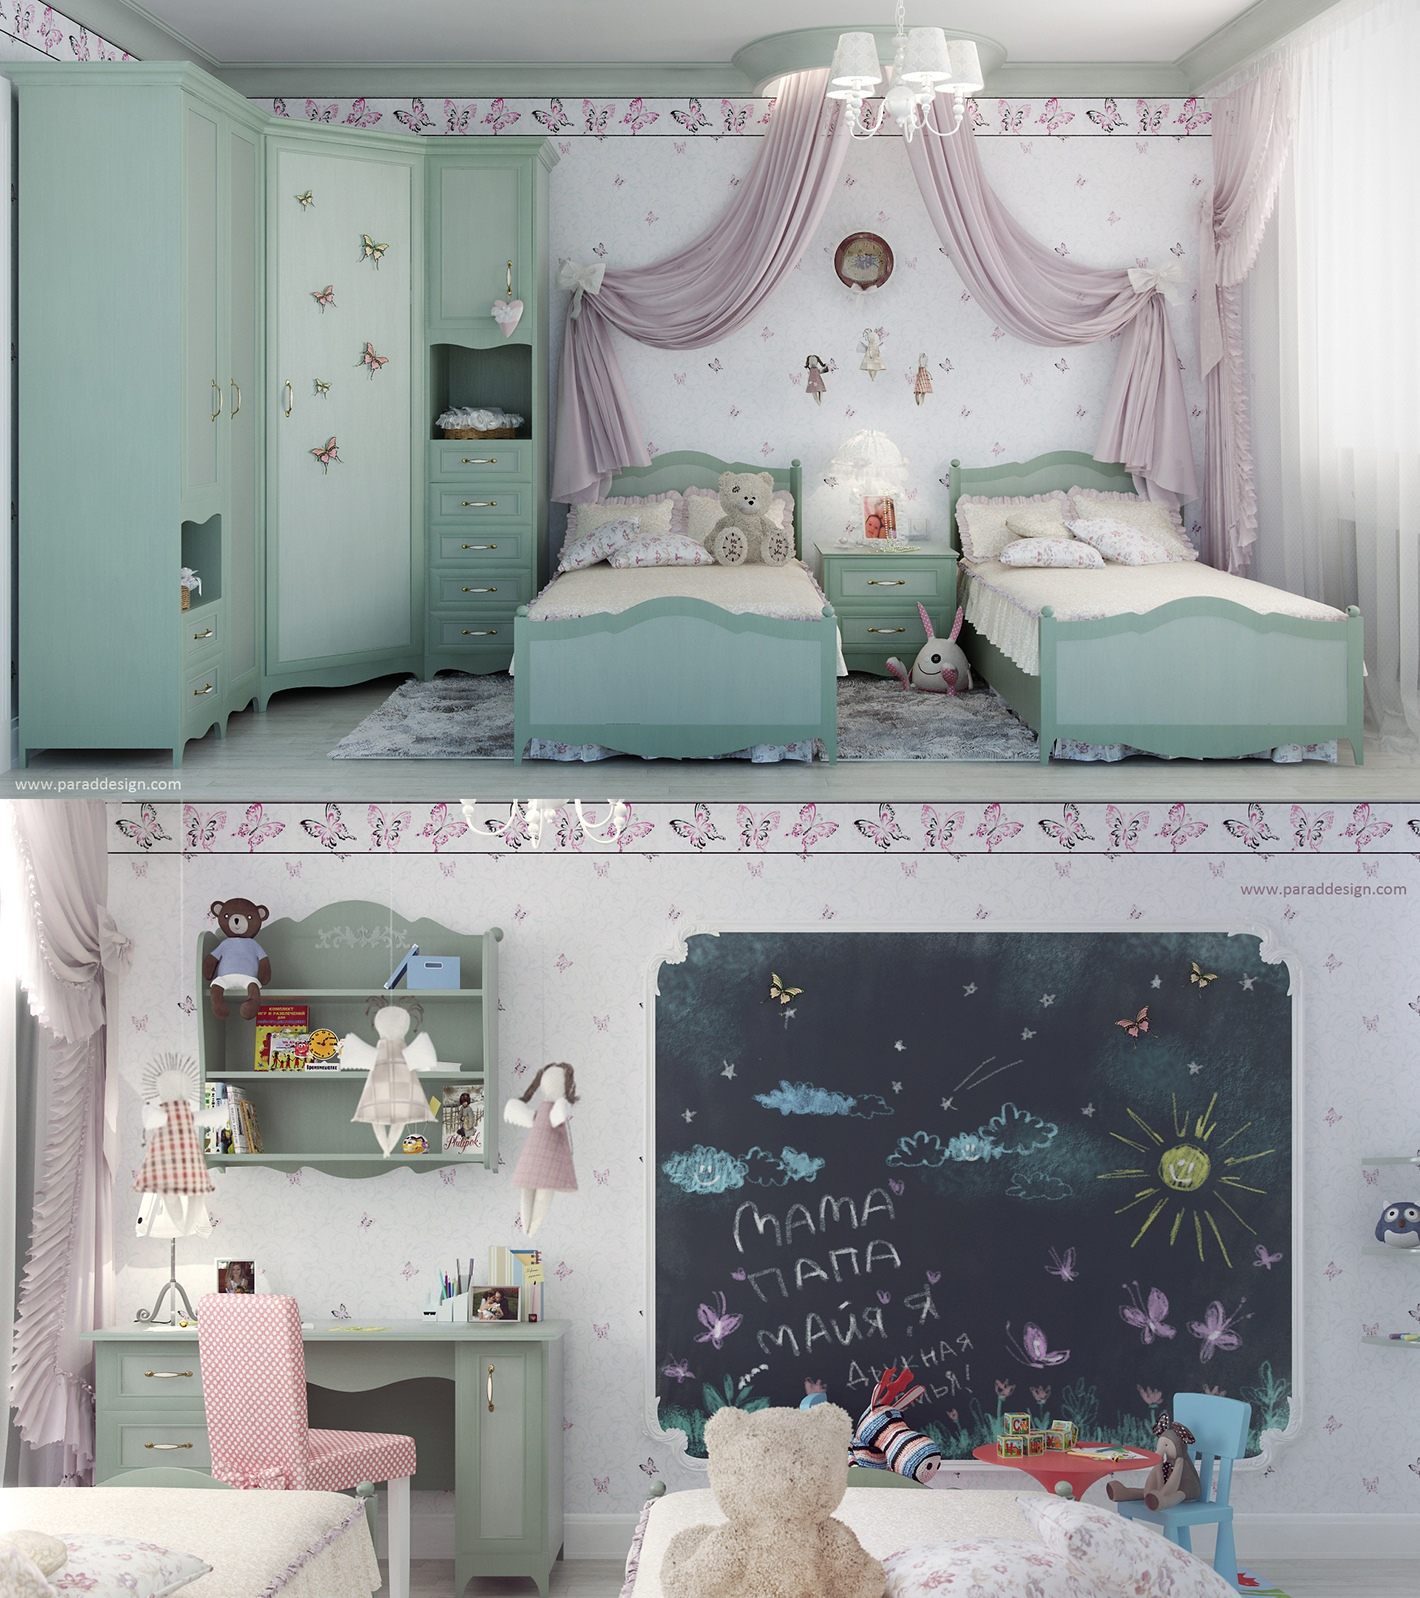 2 little girls bedroom 7 interior design ideas for Girls bedroom designs images